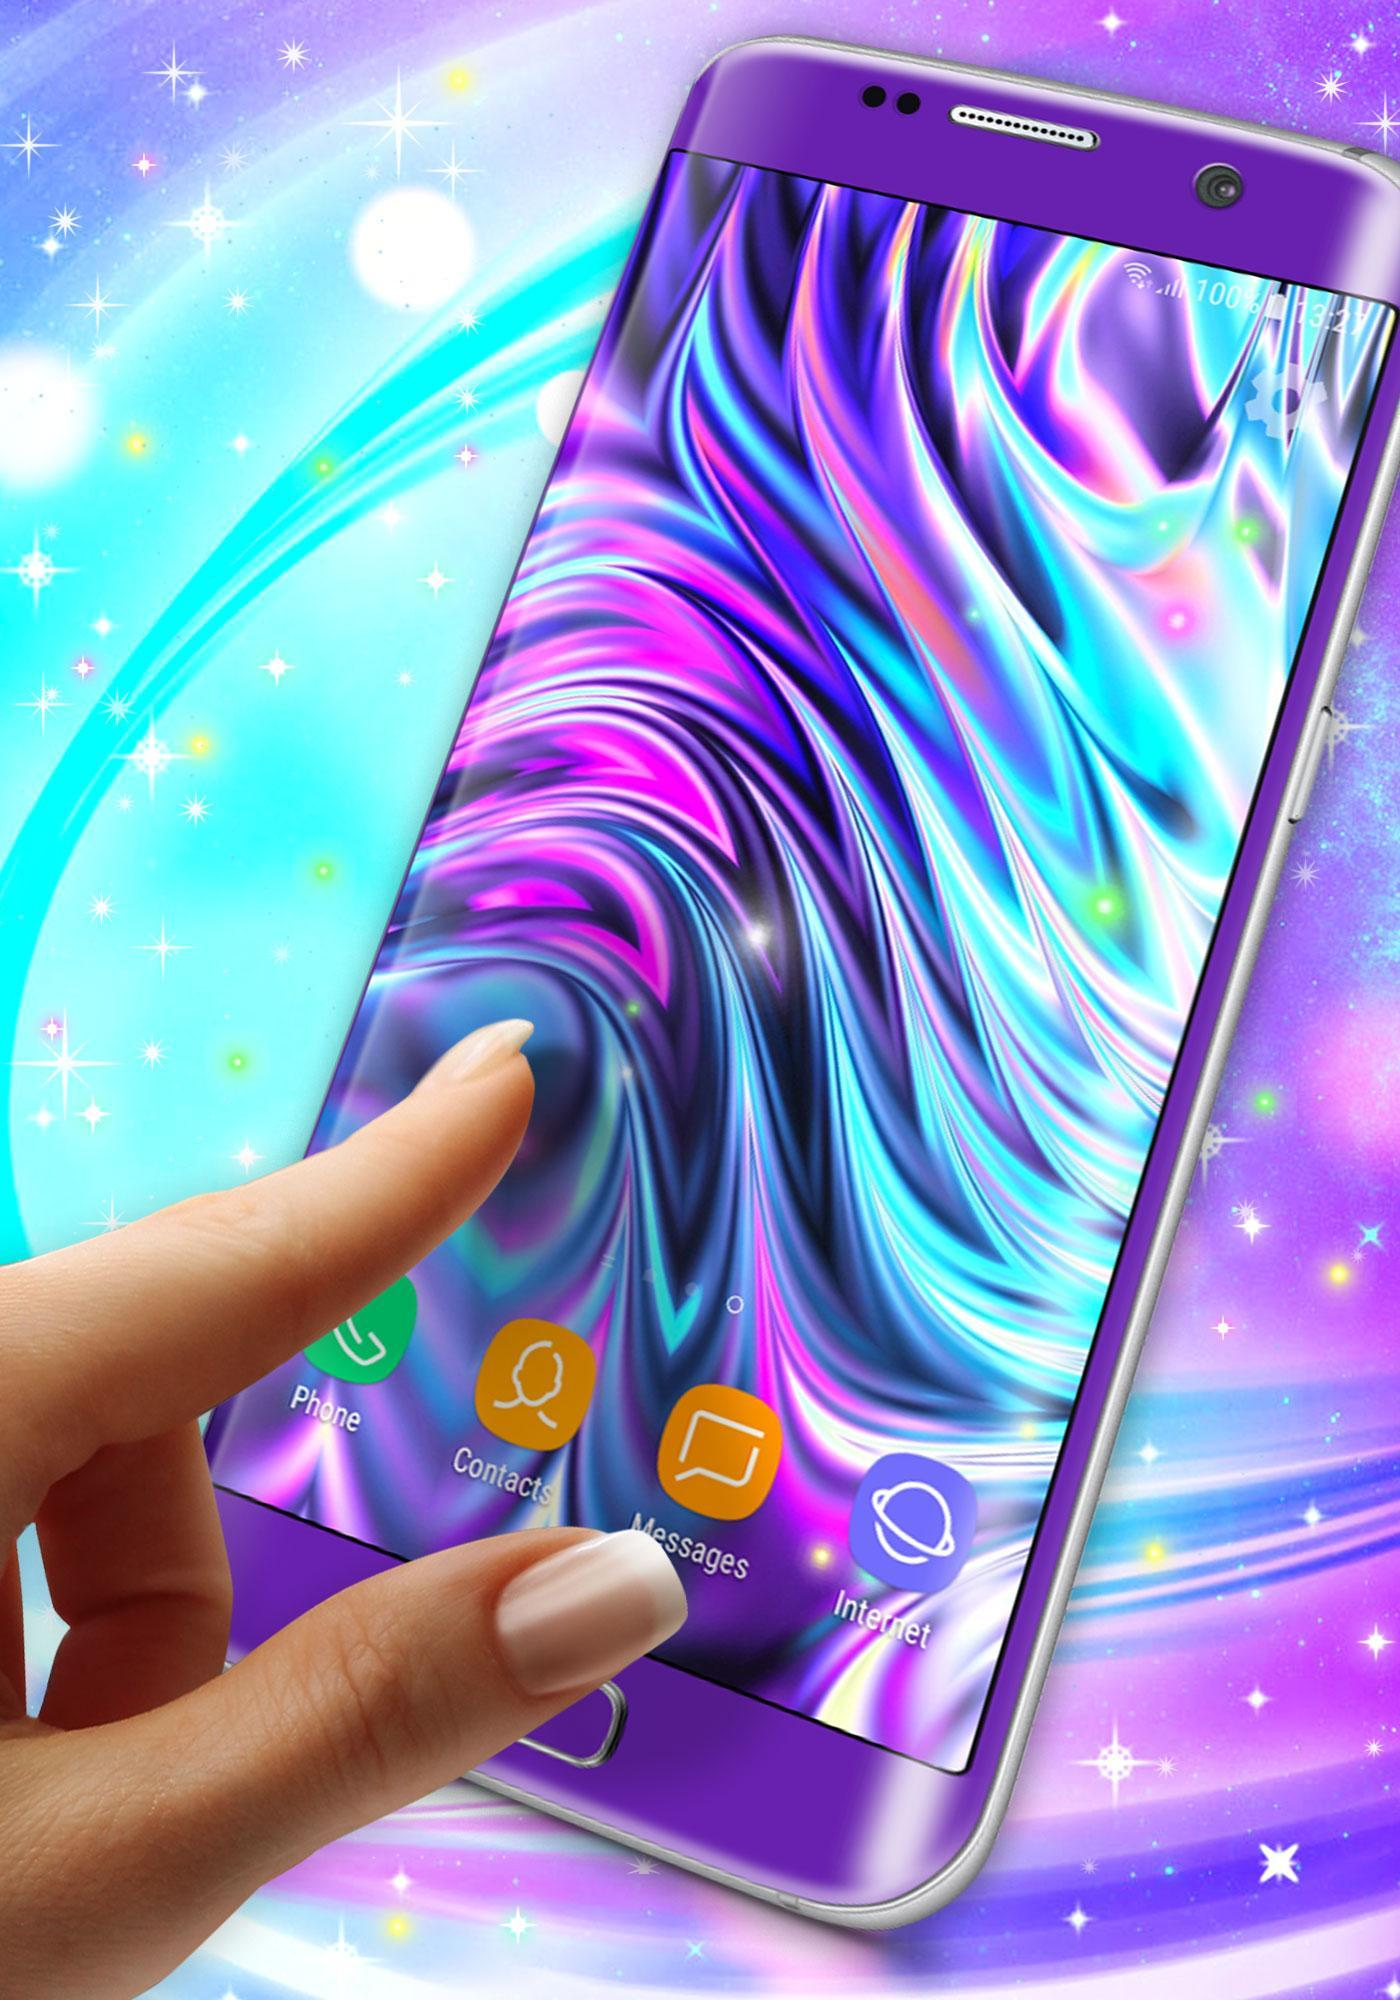 Live Wallpaper For Galaxy J2 ⭐ Background Changer For